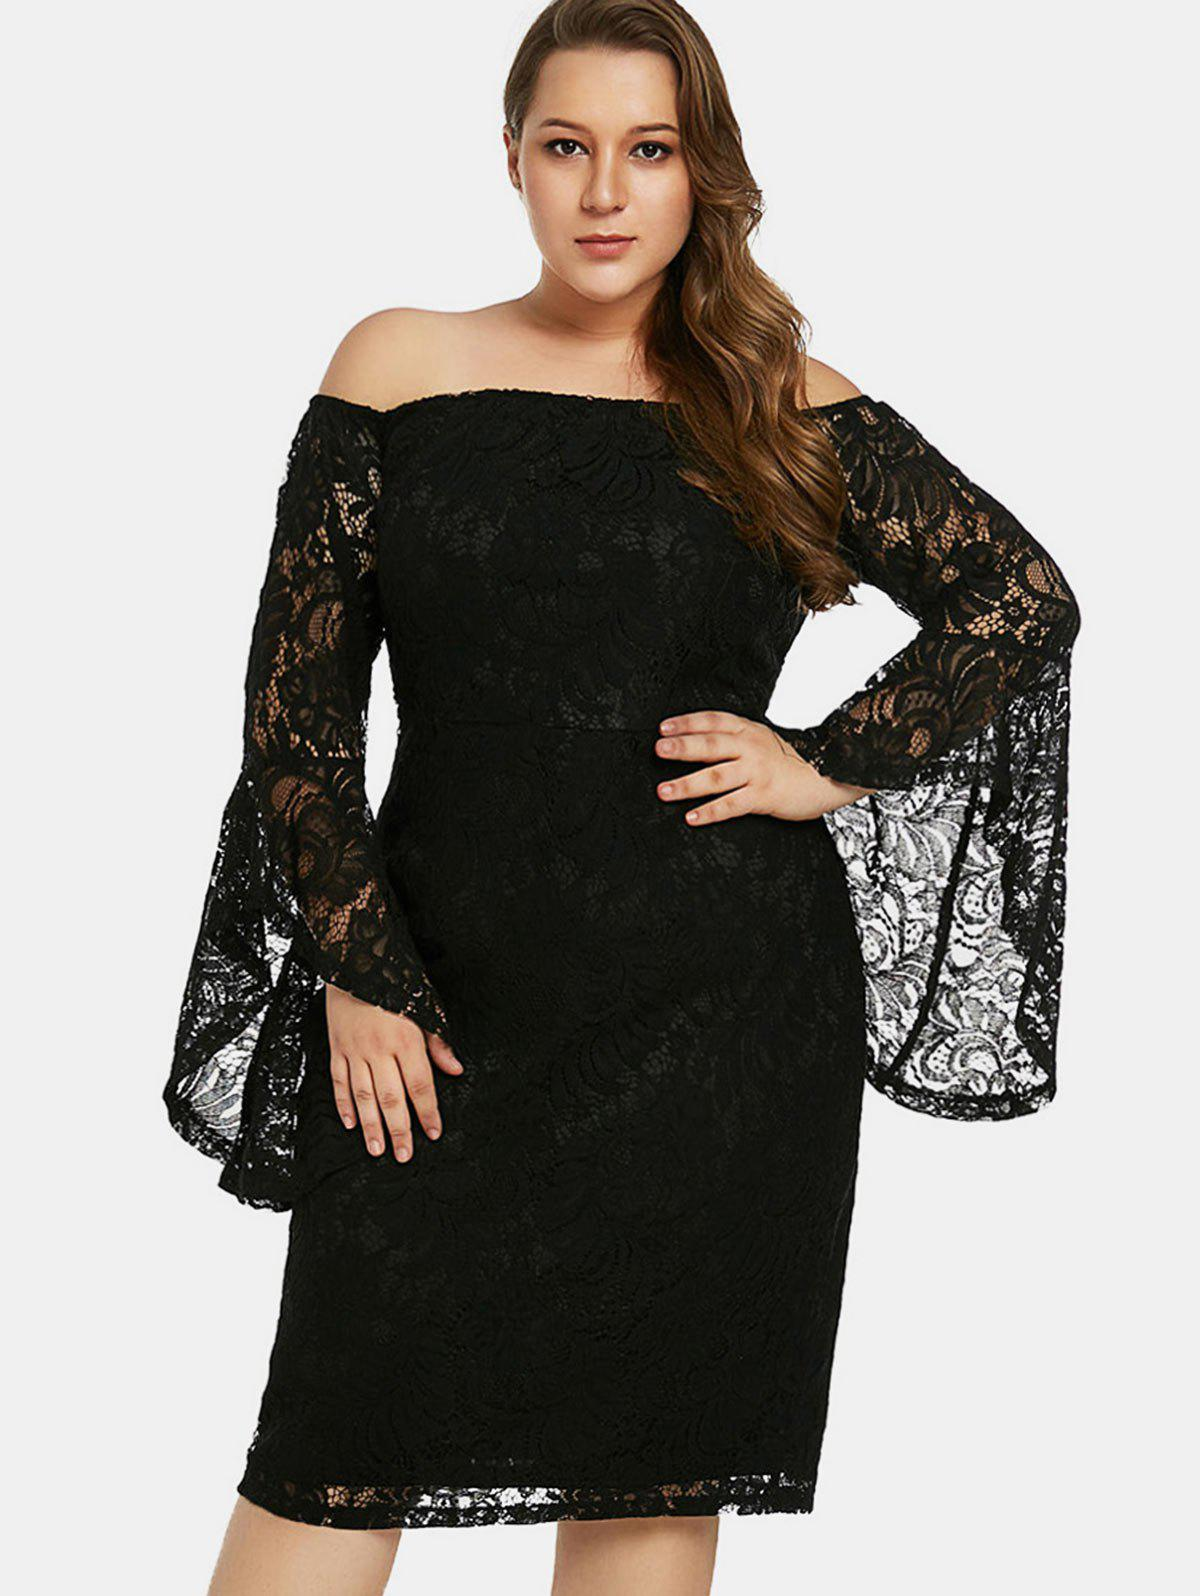 152cac4321 43% OFF] Flare Sleeve Plus Size Off The Shoulder Lace Dress   Rosegal